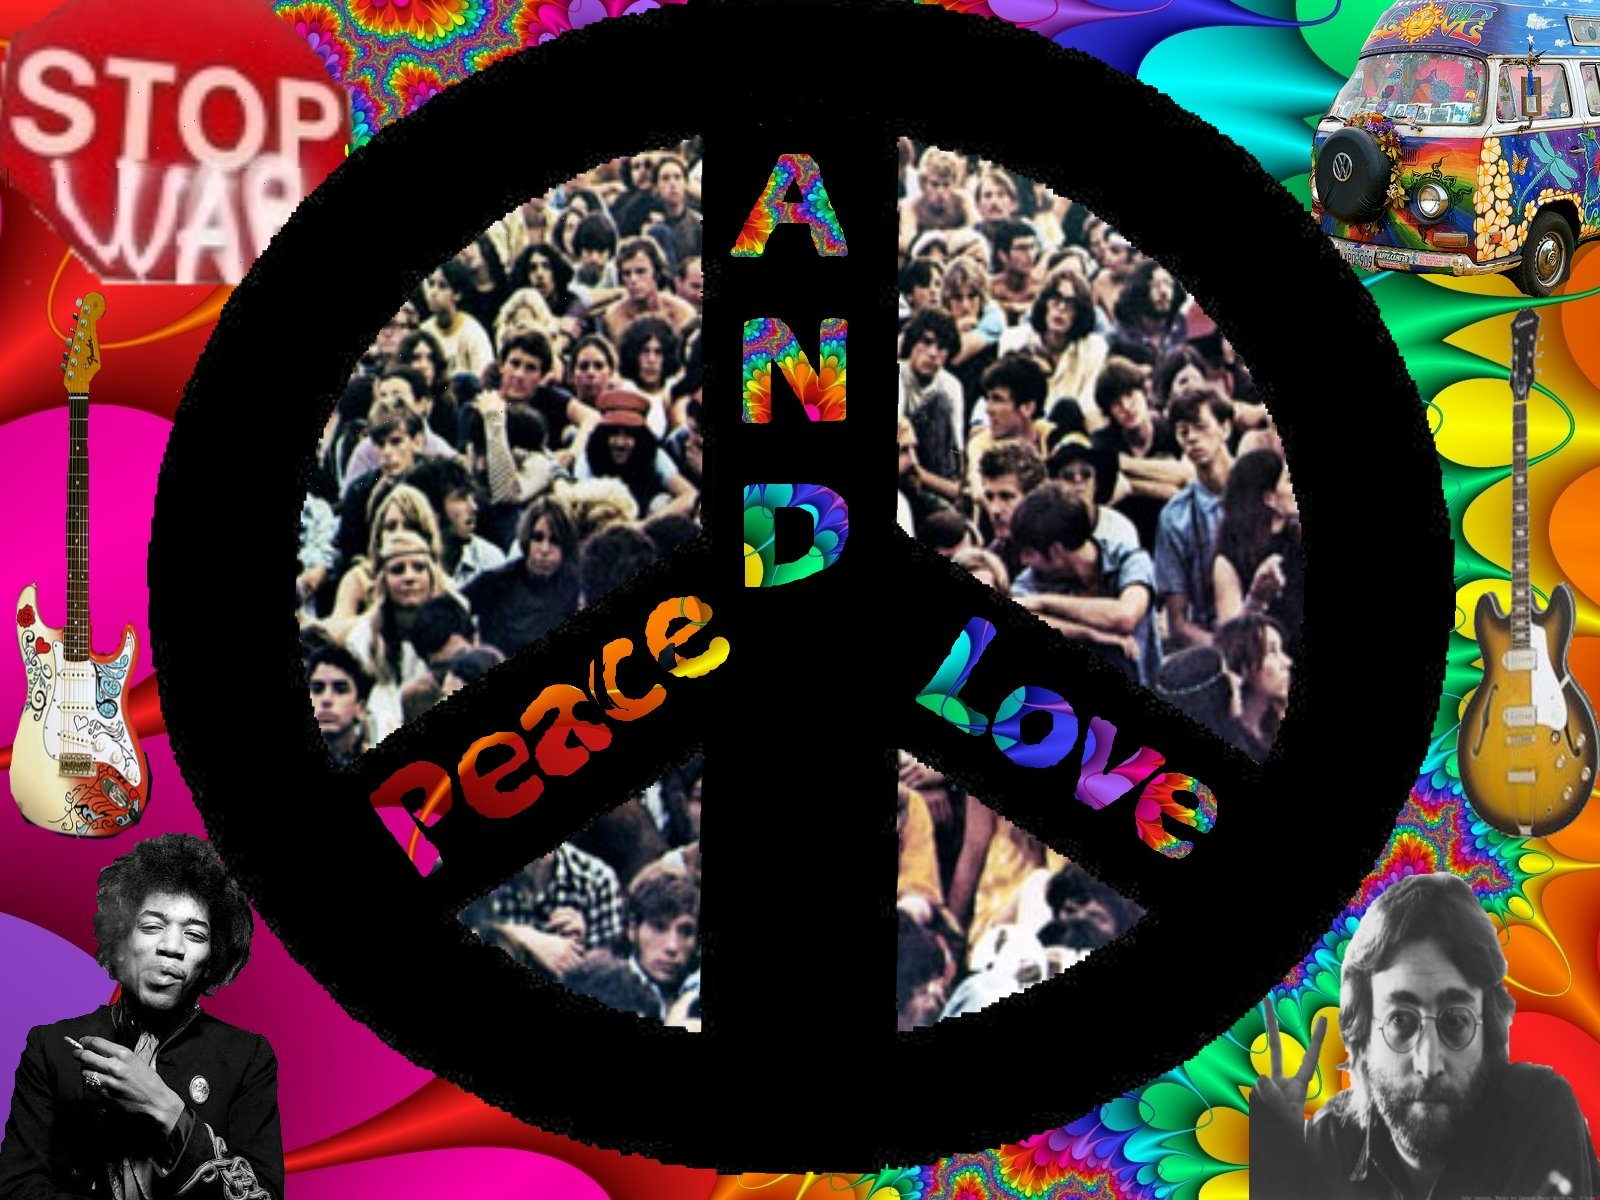 Peace Psychedelic Guitars John Lennon Sign 60s Wallpaper